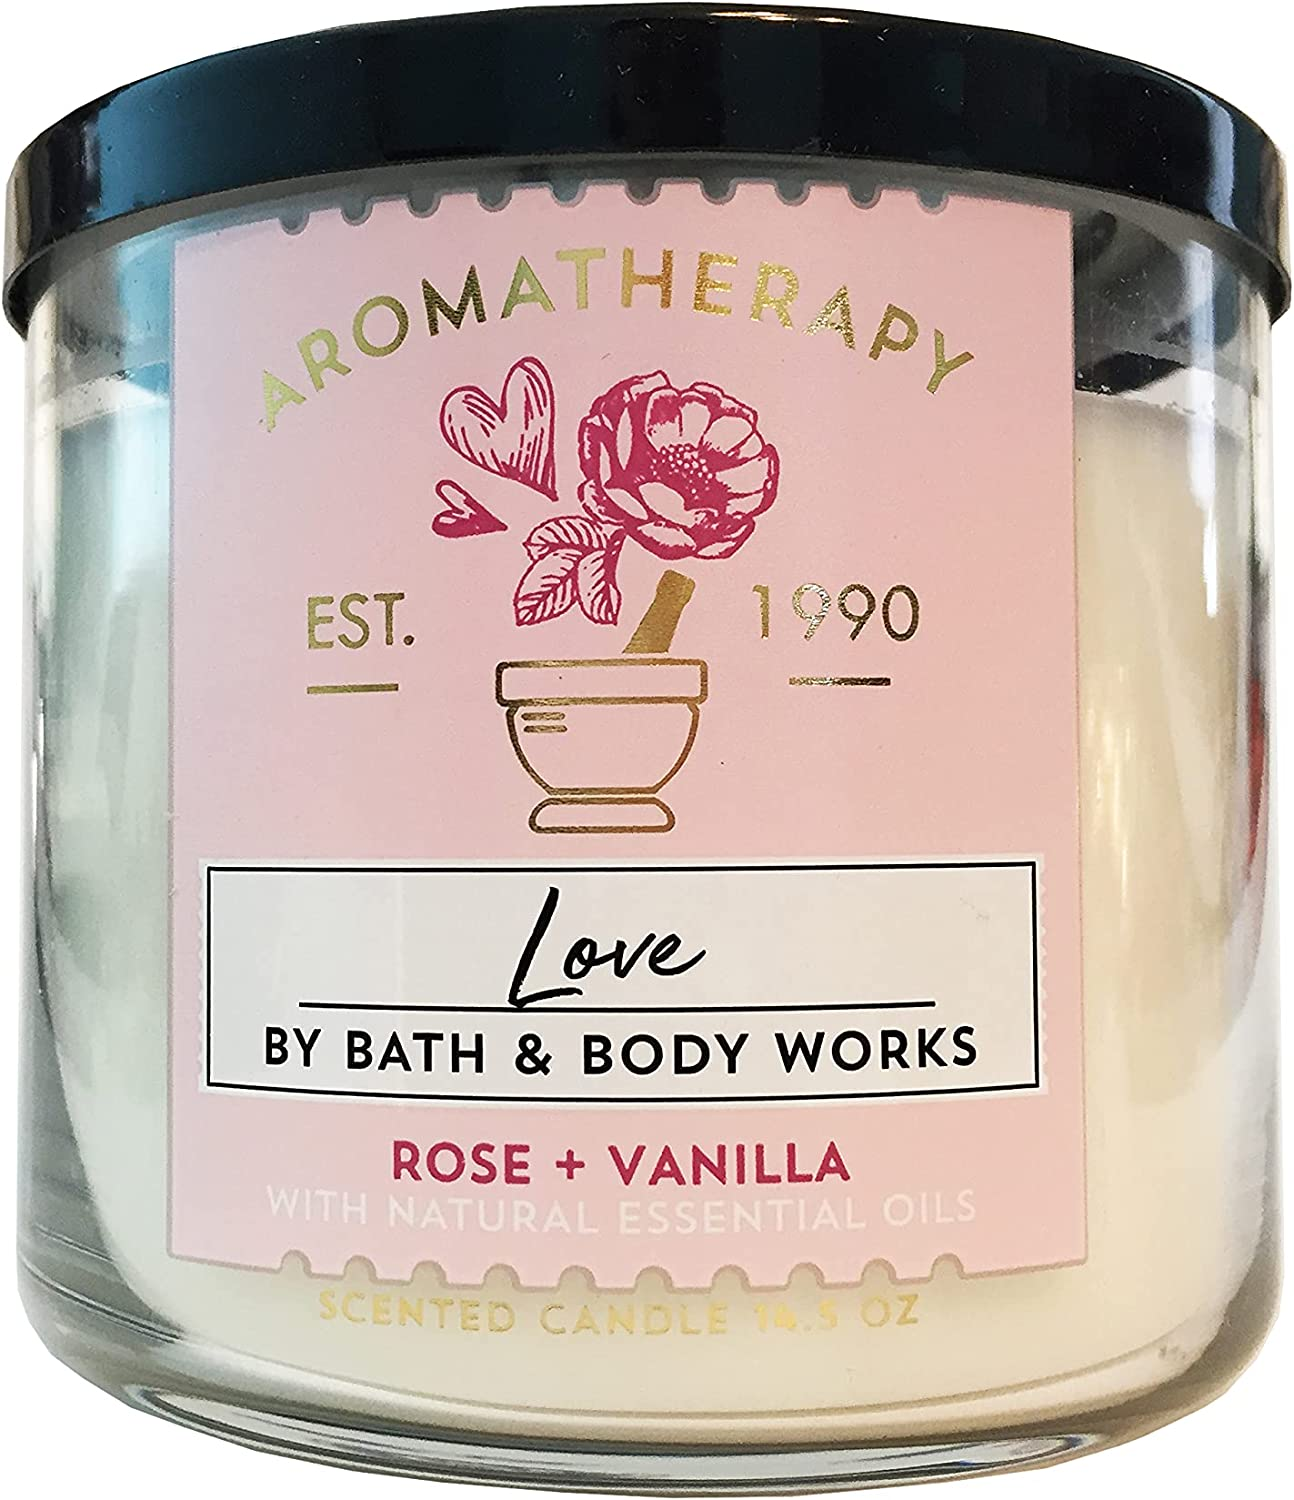 New life Bath Body Works 3-Wick Aromatherapy Popular ROSE — Candle in LOVE